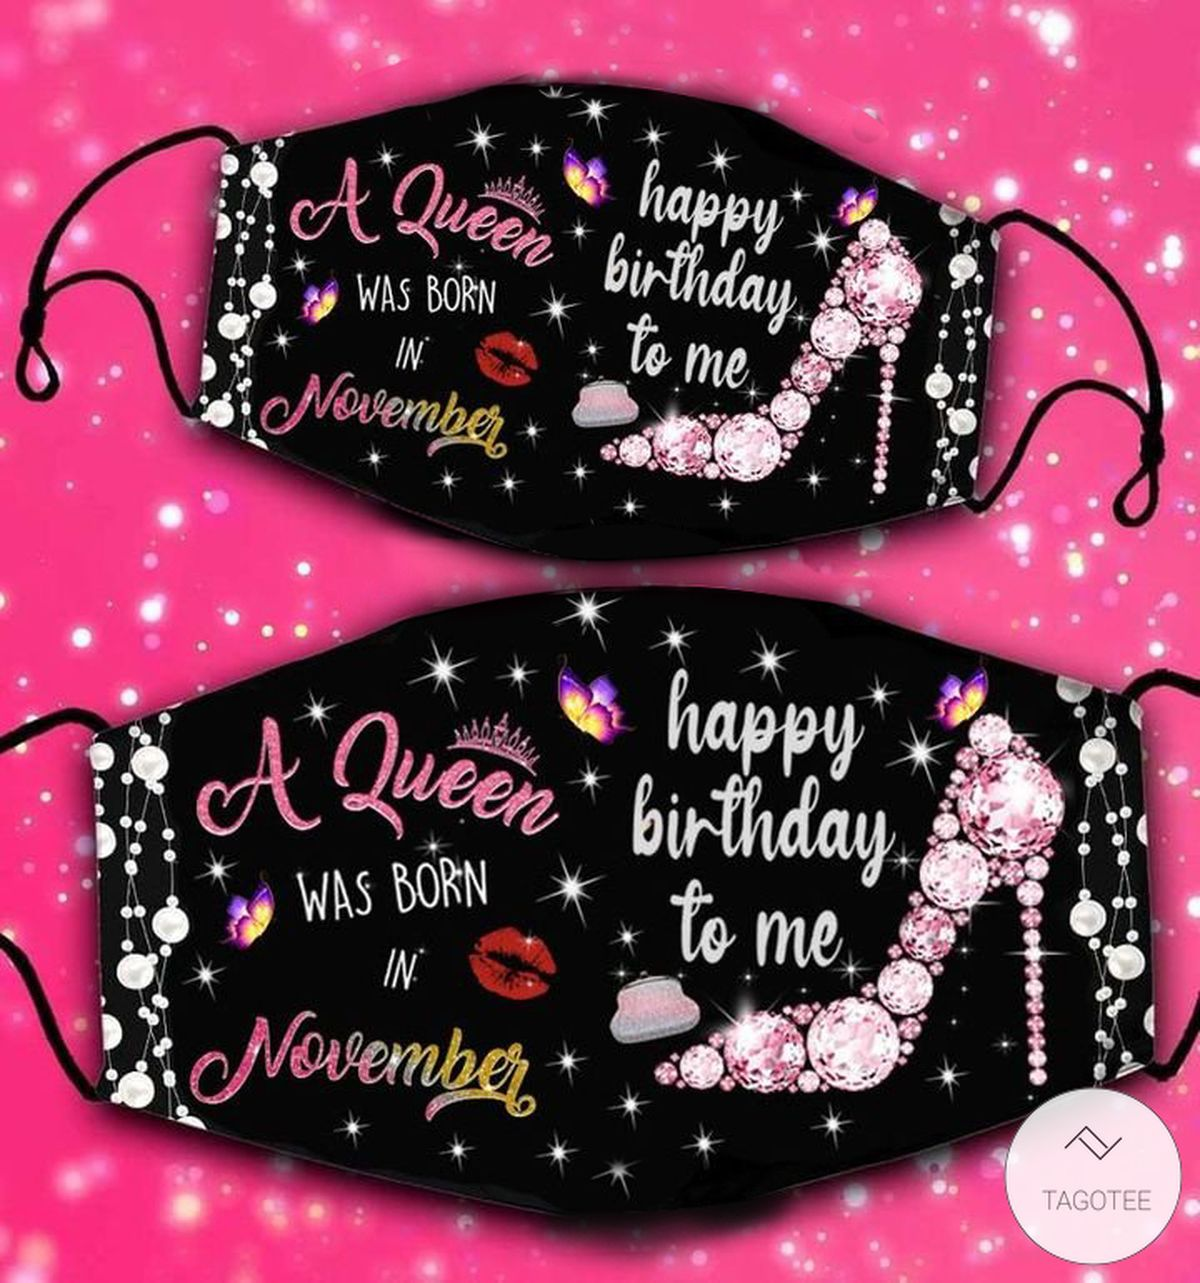 A-Queen-Was-Born-In-November-Happy-Birthday-To-Me-Face-Mask